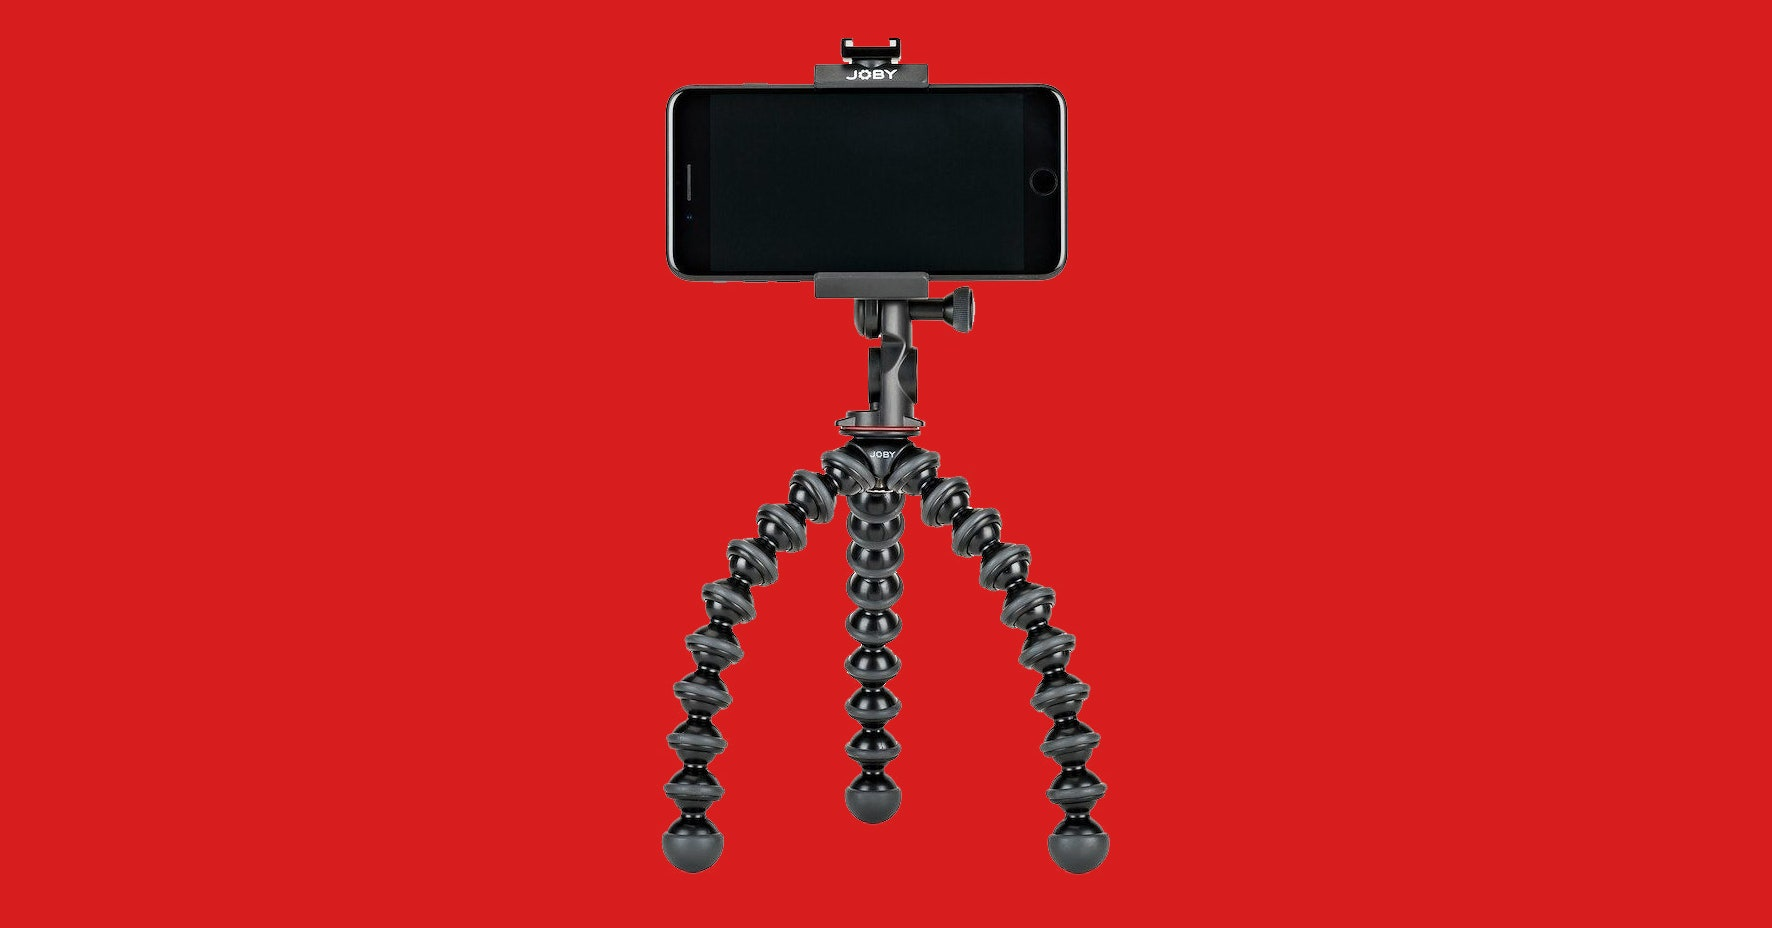 10 Best Camera Accessories for Phones: Apps, Tripods, Mics, and More